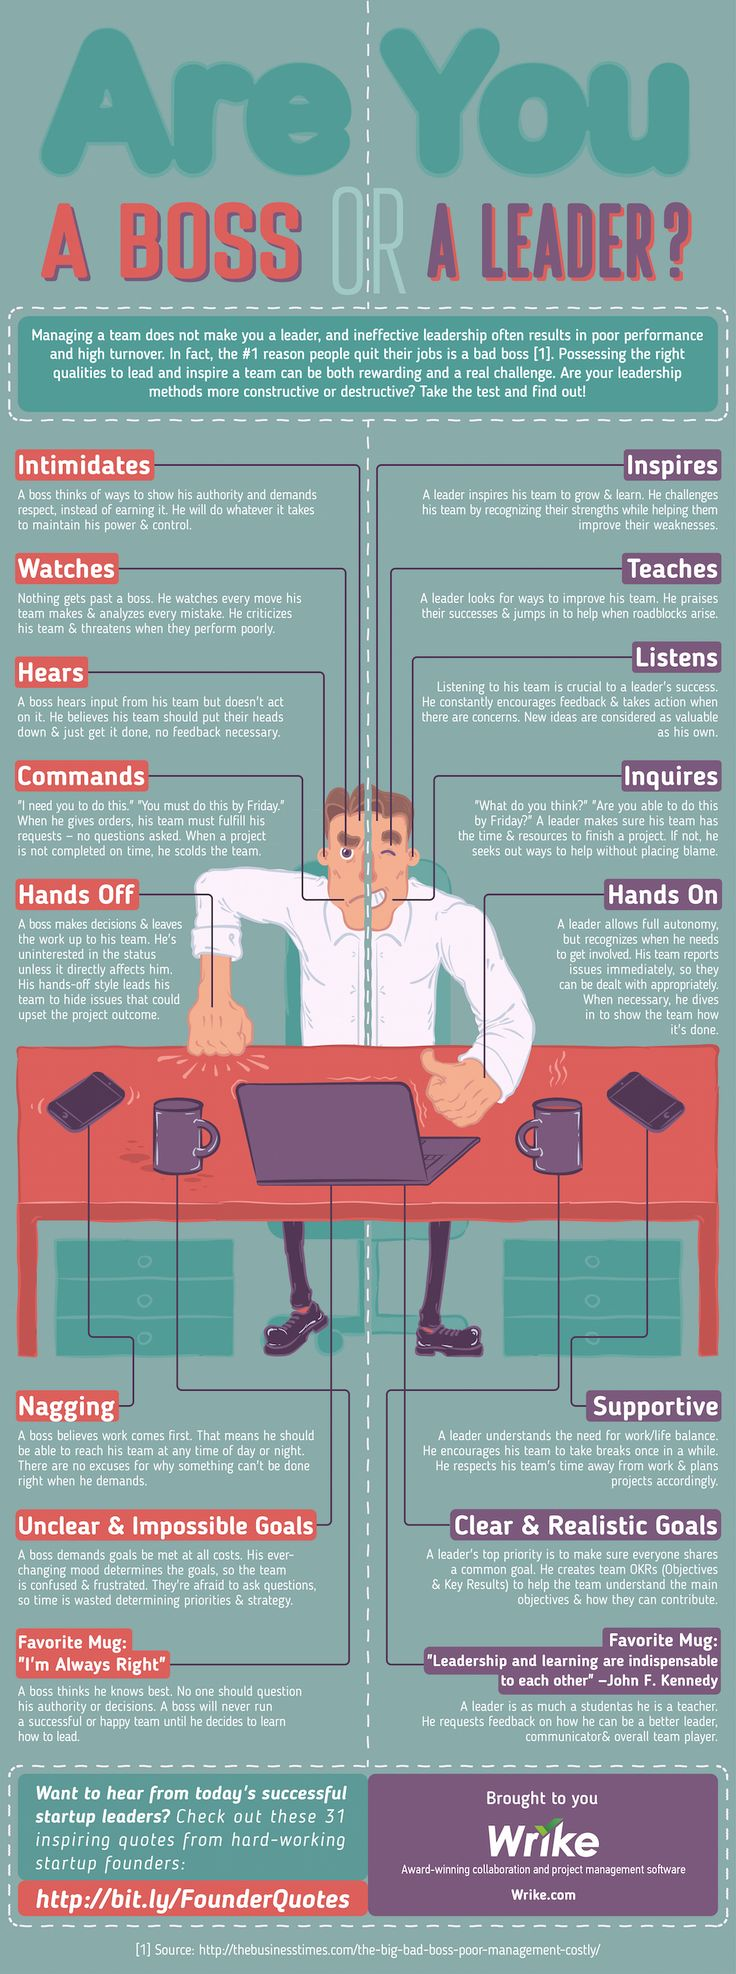 Are You A Boss Or A Leader [Infographic] | Daily Infographic